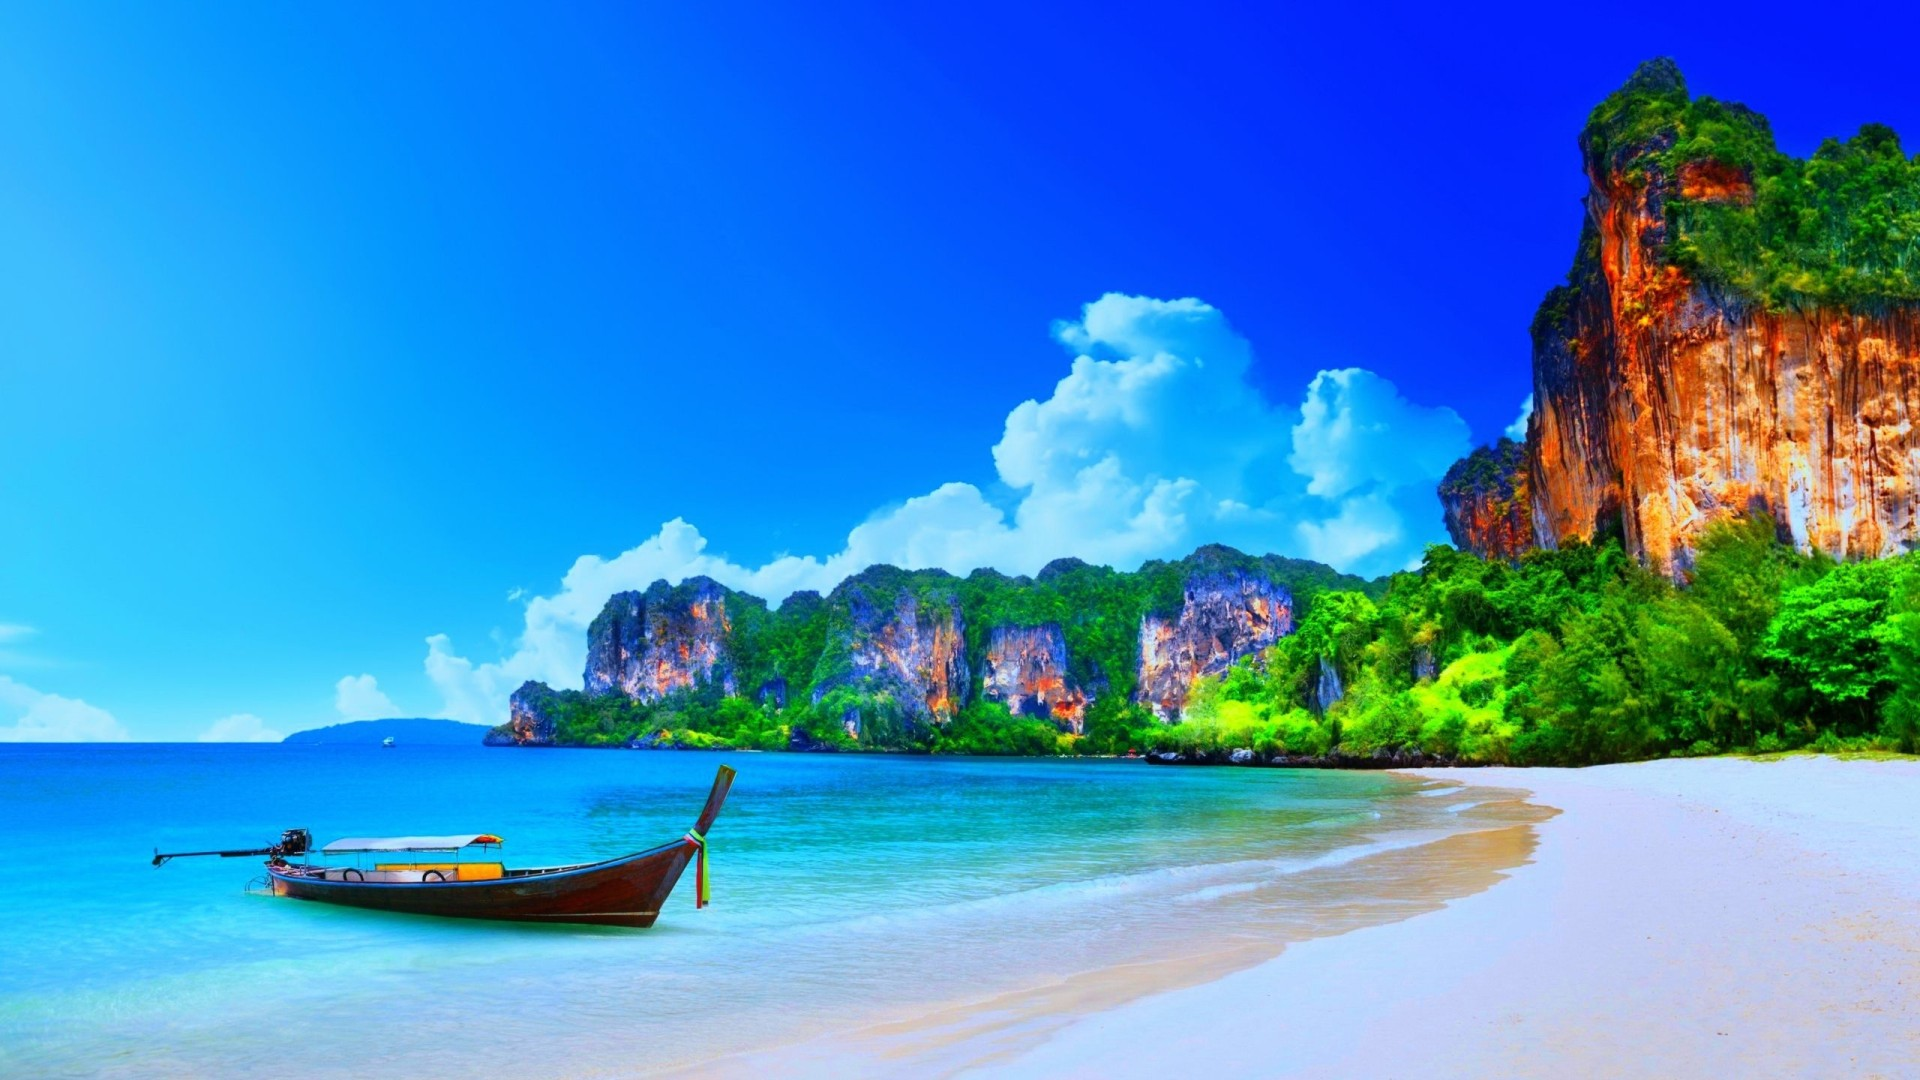 Thailand Beach Wallpaper